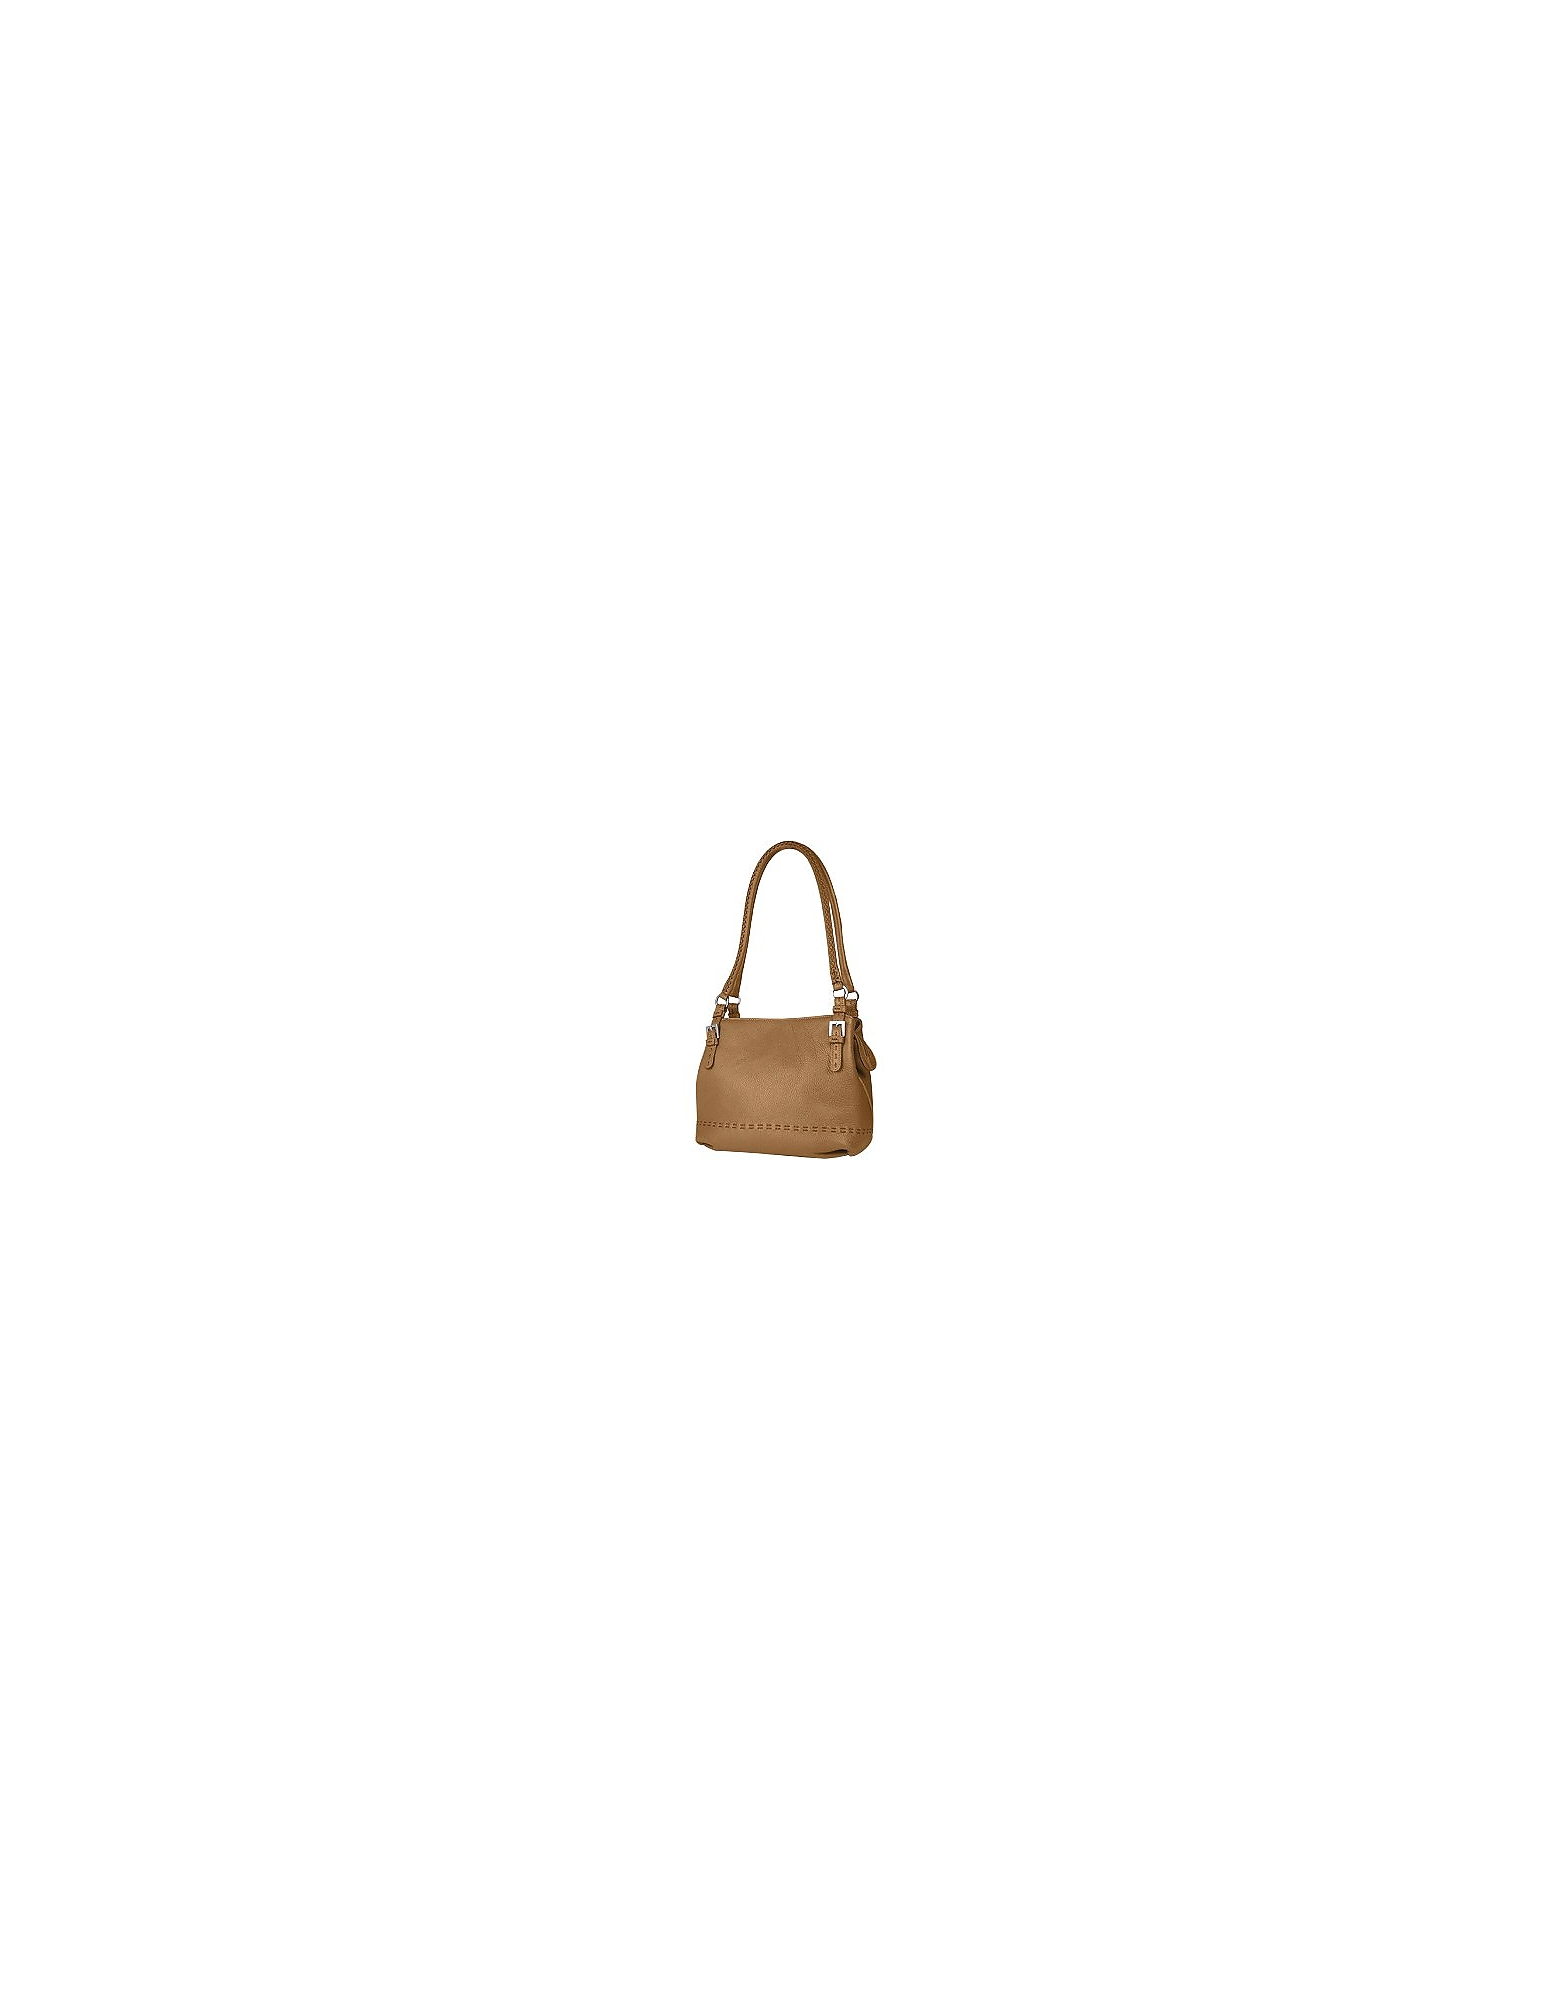 Fontanelli Handbags, Tan Brown Stiched Soft Leather Handbag